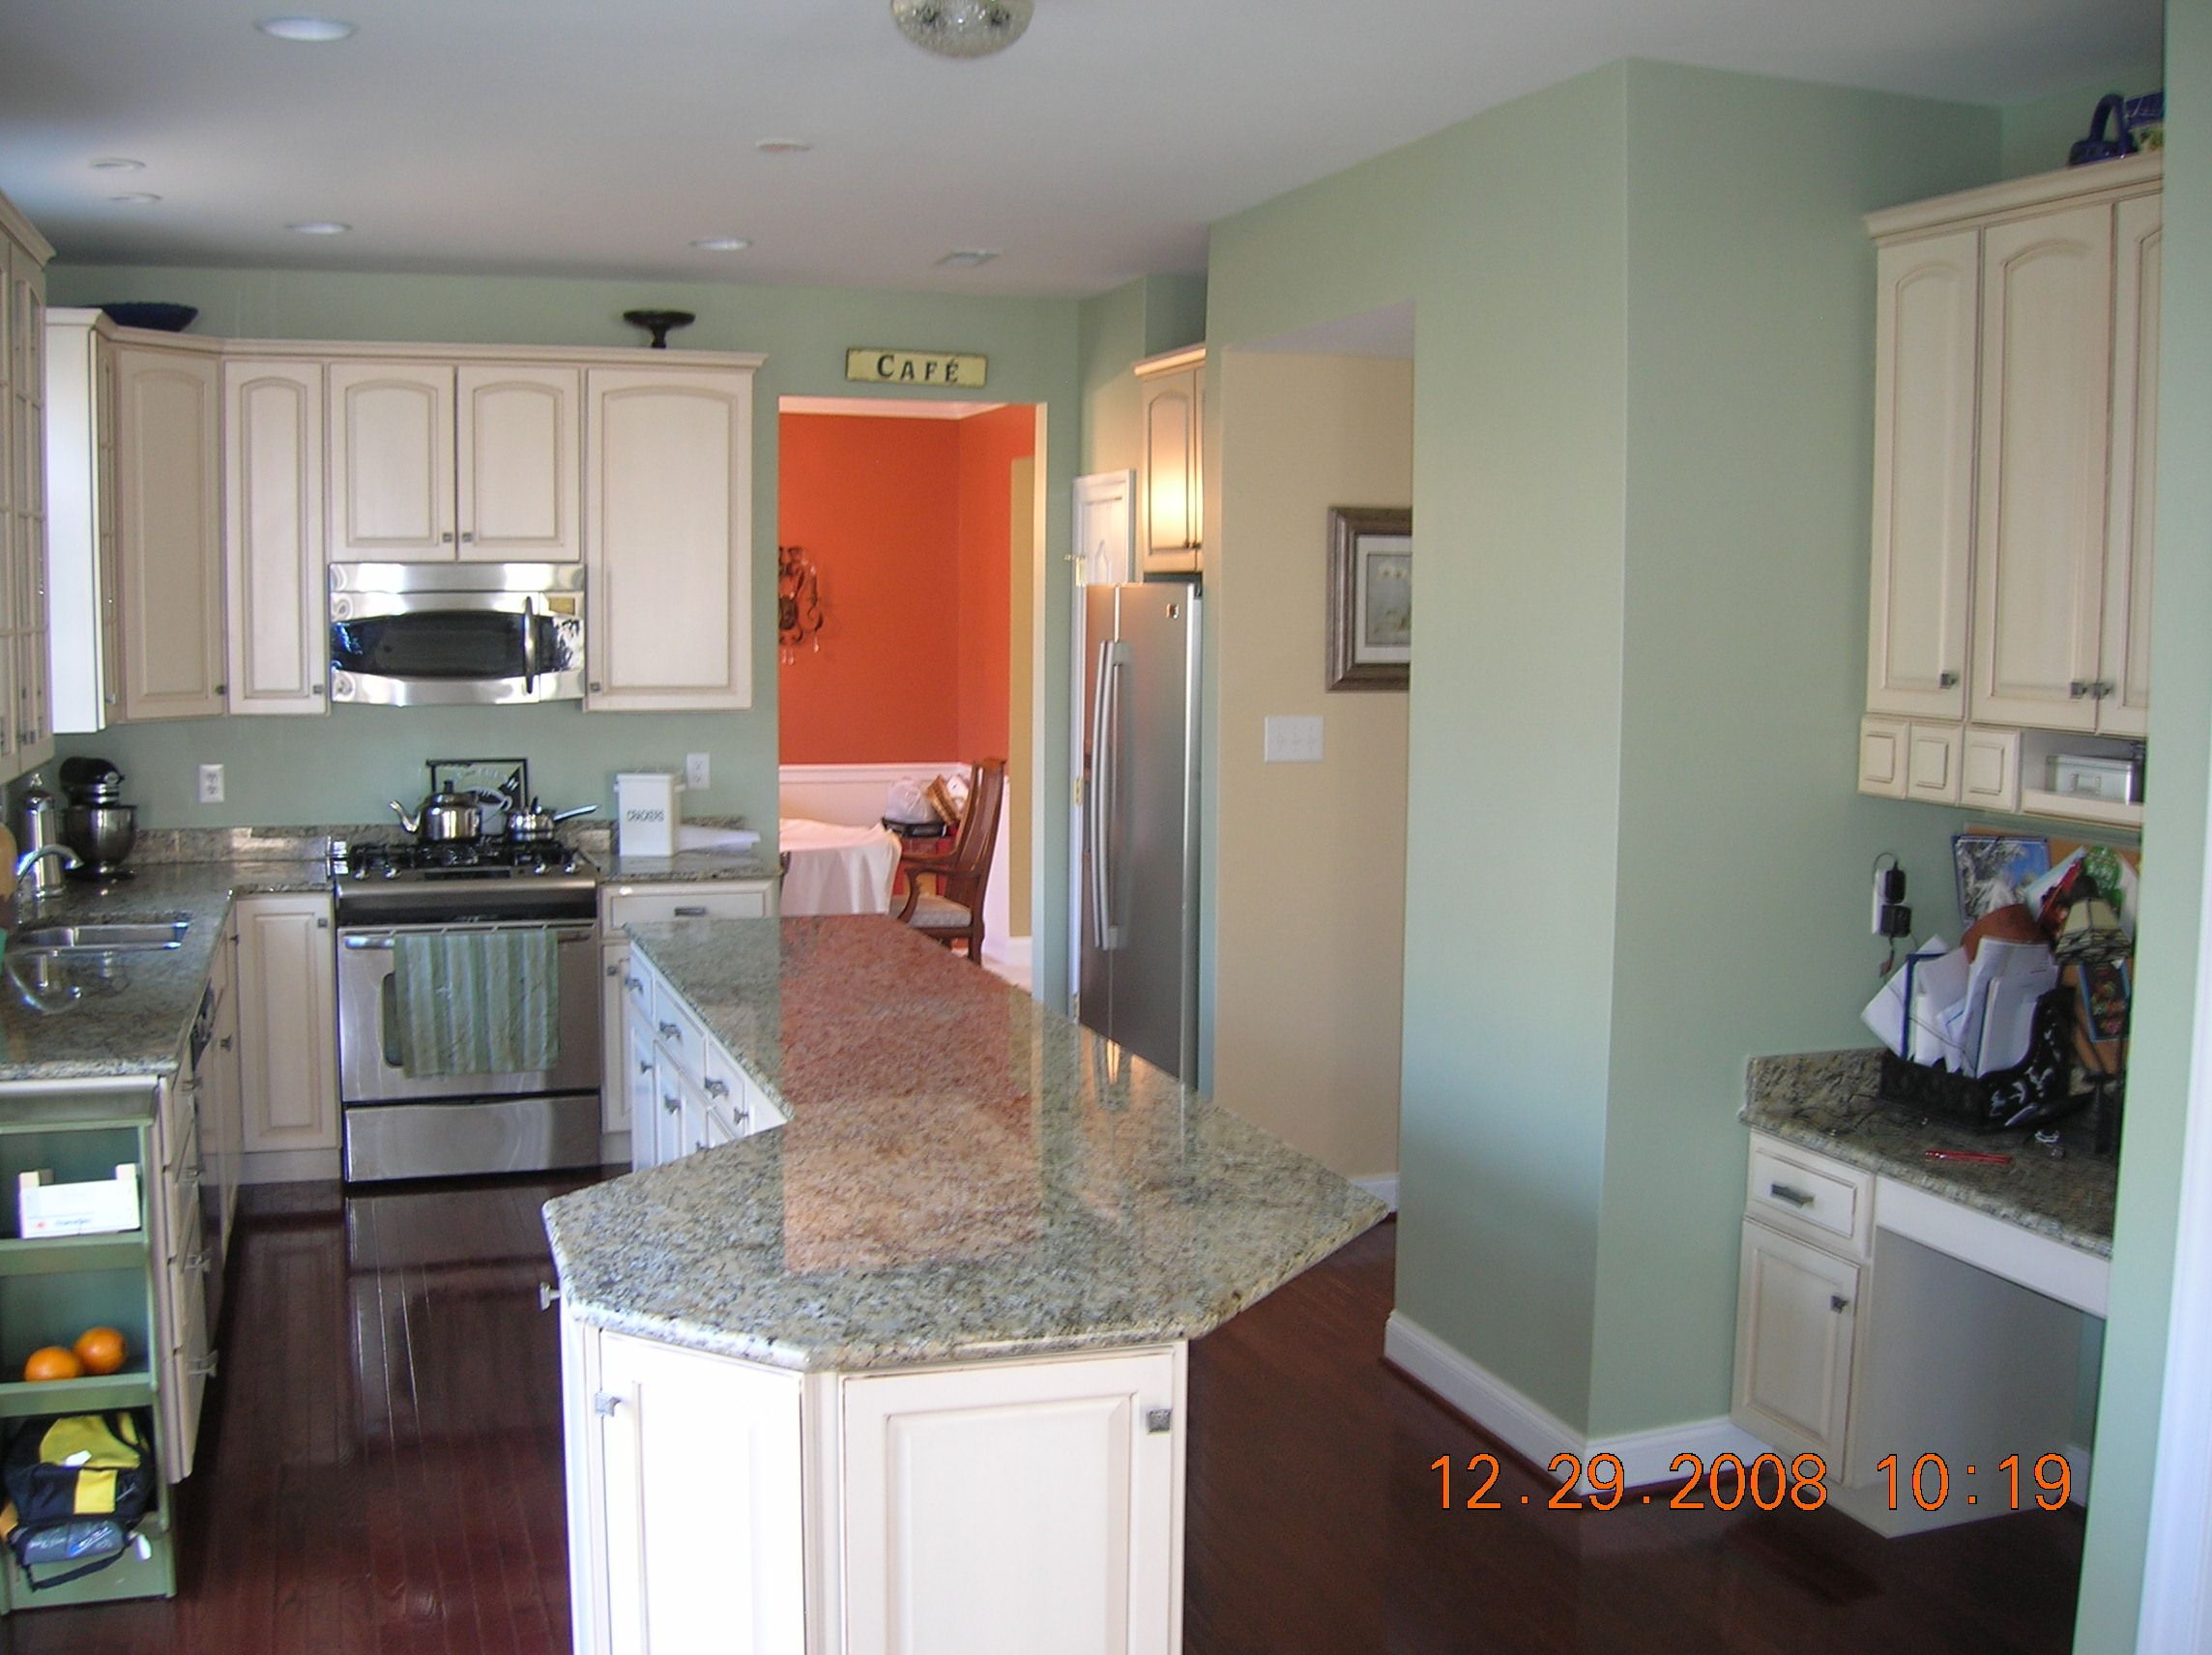 Sherwin Williams Green Paint Kitchen Cabinet Glidden